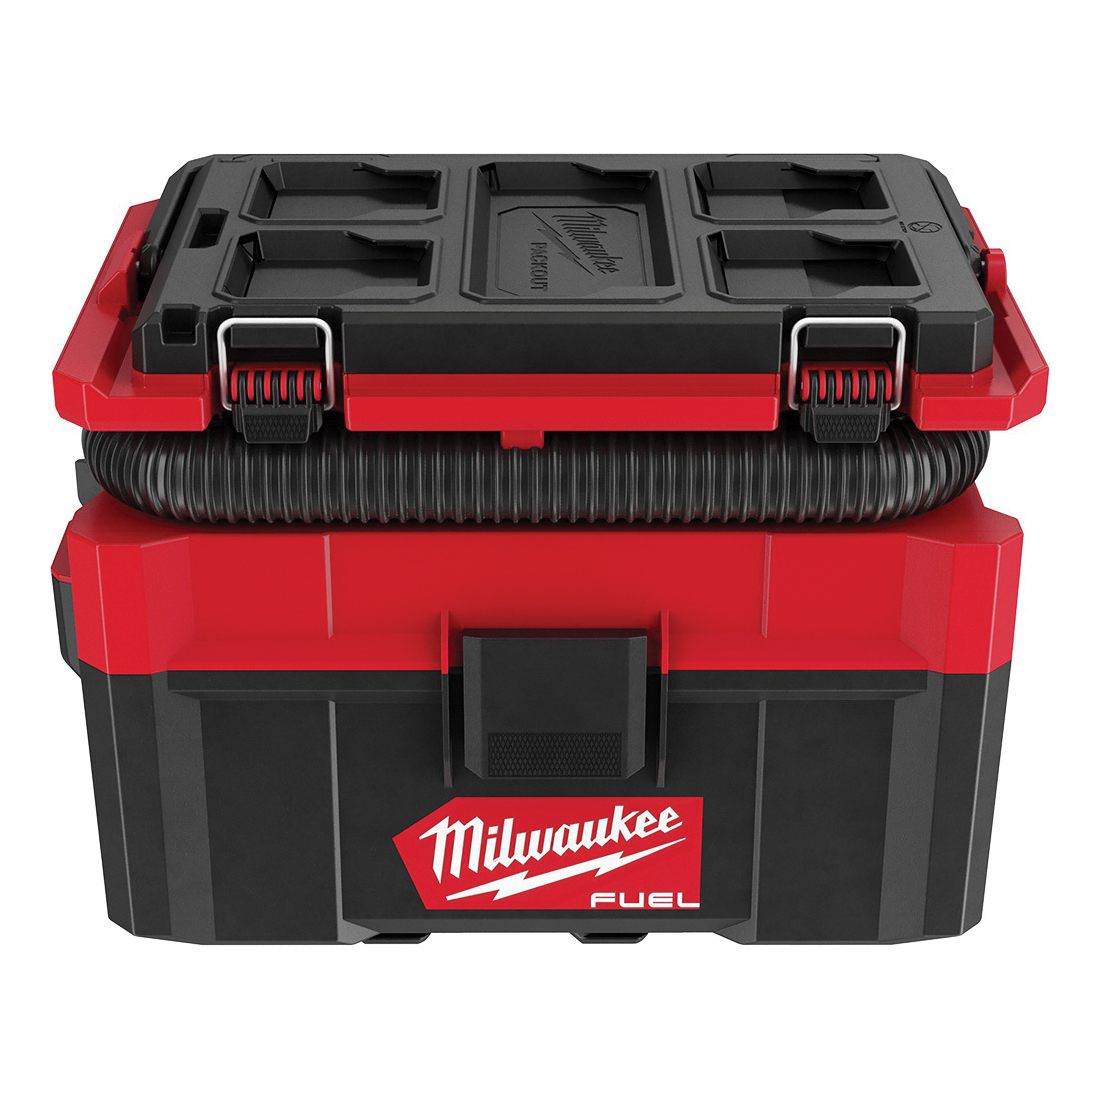 Milwaukee® 0970-20 M18™ FUEL™ PACKOUT™ Cordless Handheld Wet/Dry Vacuum Kit, 12 A, 2.5 gal Tank, 18 V, Polycarbonate Housing